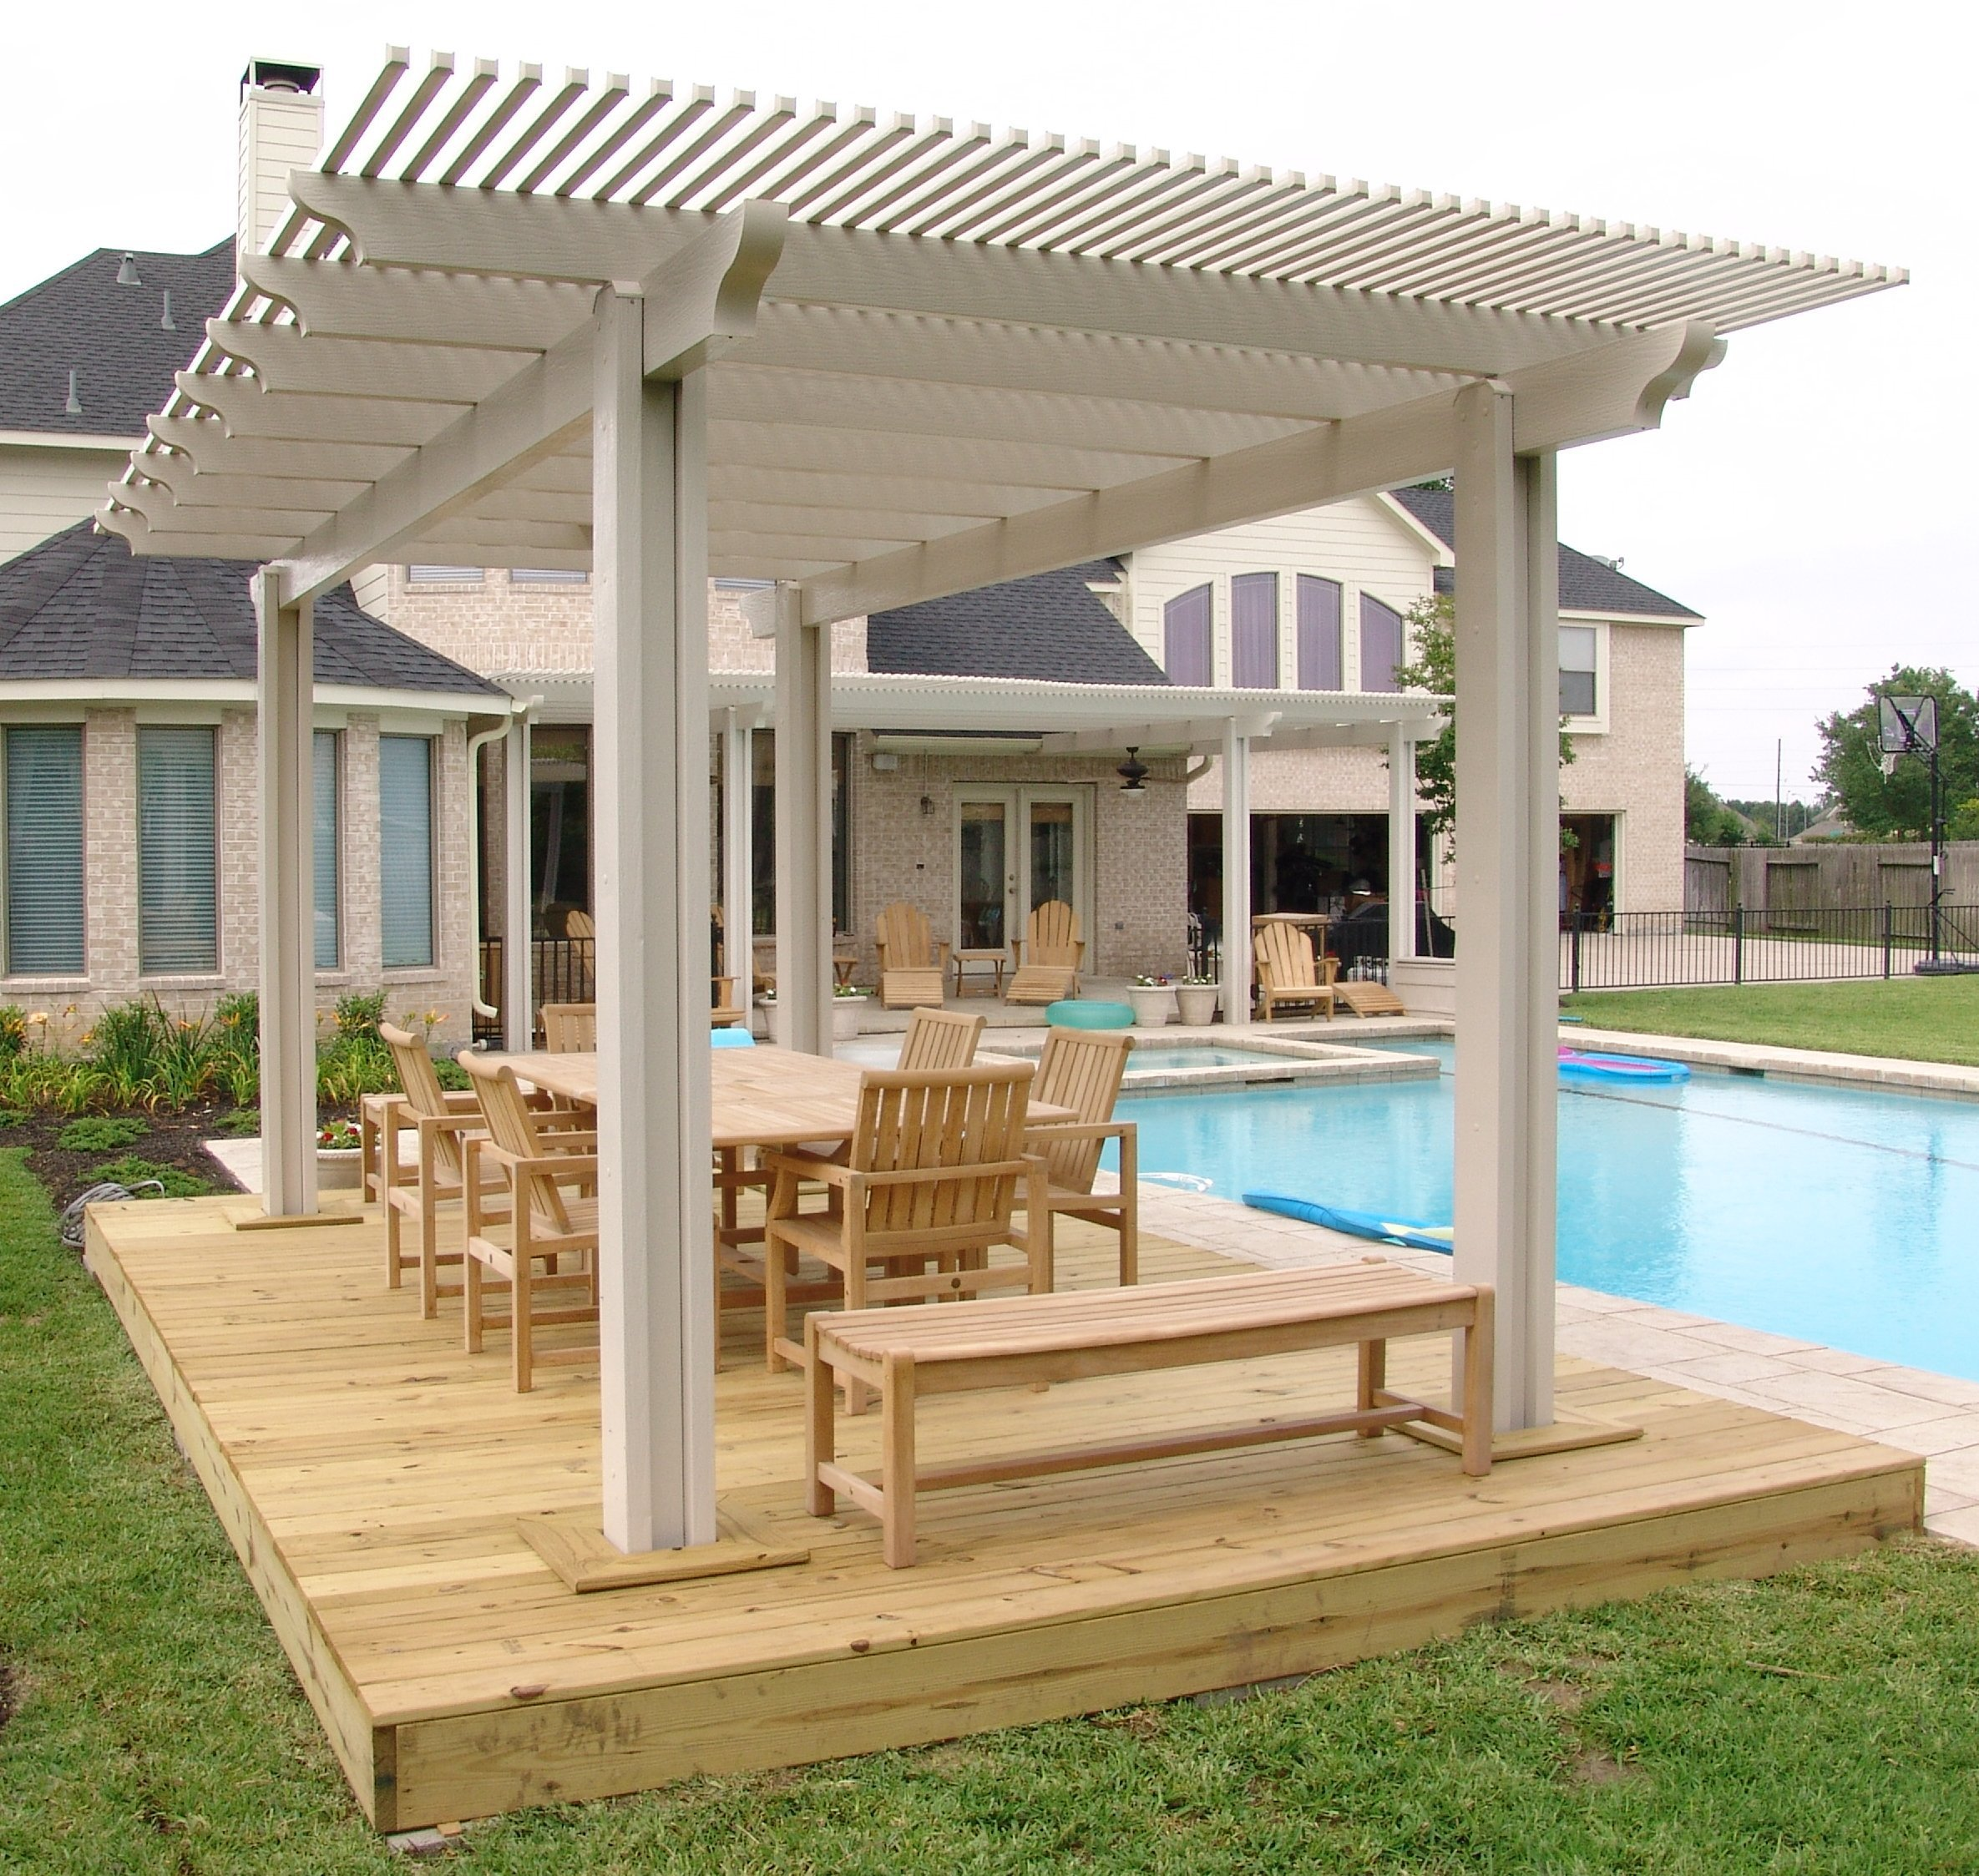 home with a new custom wood framed patio cover or maybe a pergola